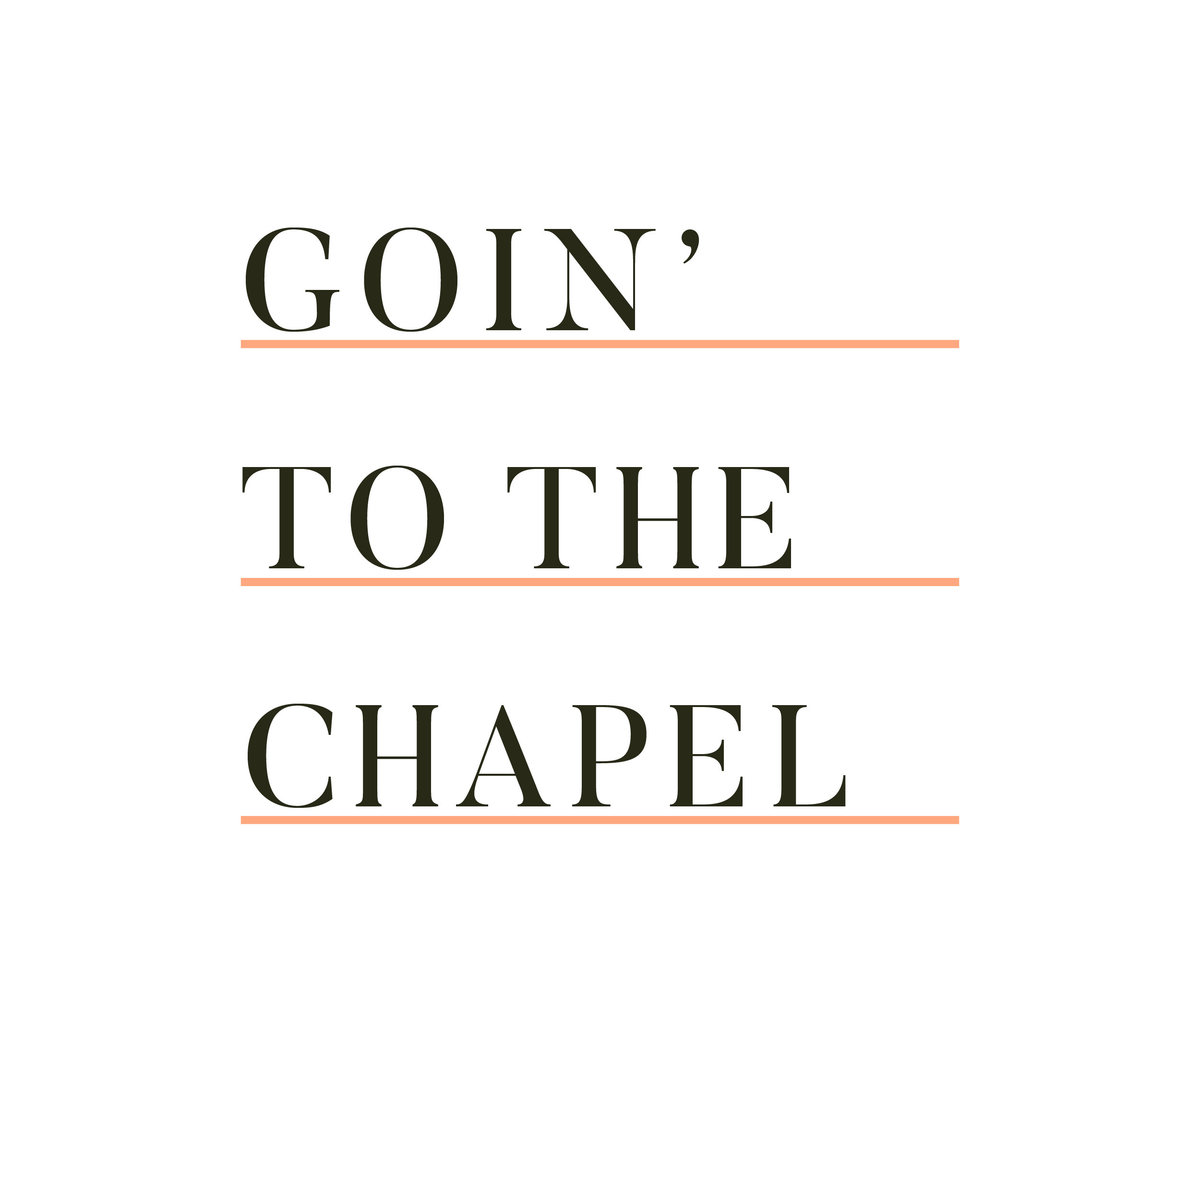 goin-to-the-chapel-01